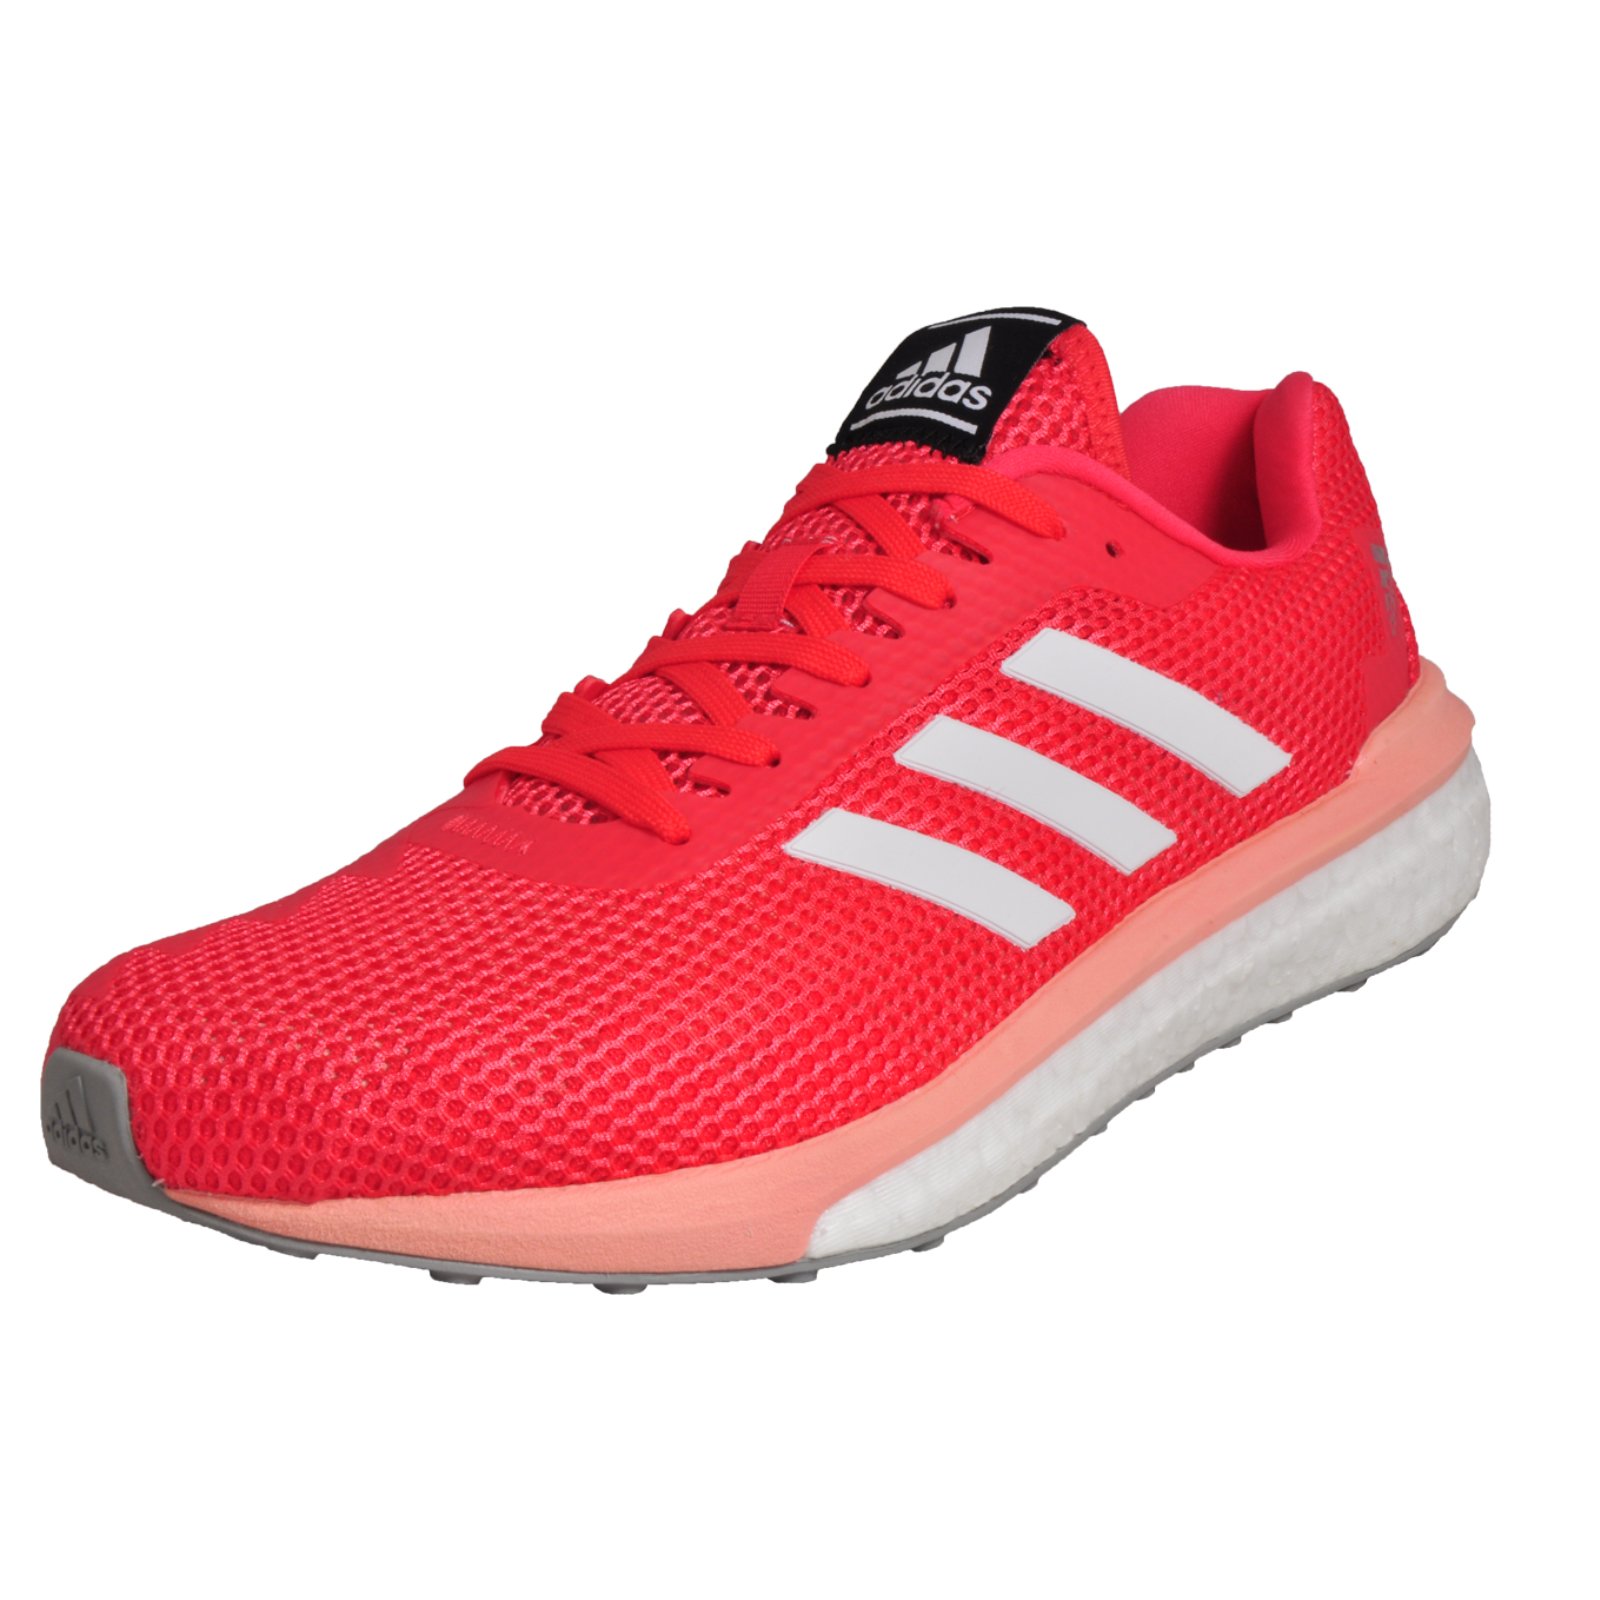 68a478001a39b Details about Adidas Vengeful Boost Womens Premium Running Shoes Gym  Trainers Red